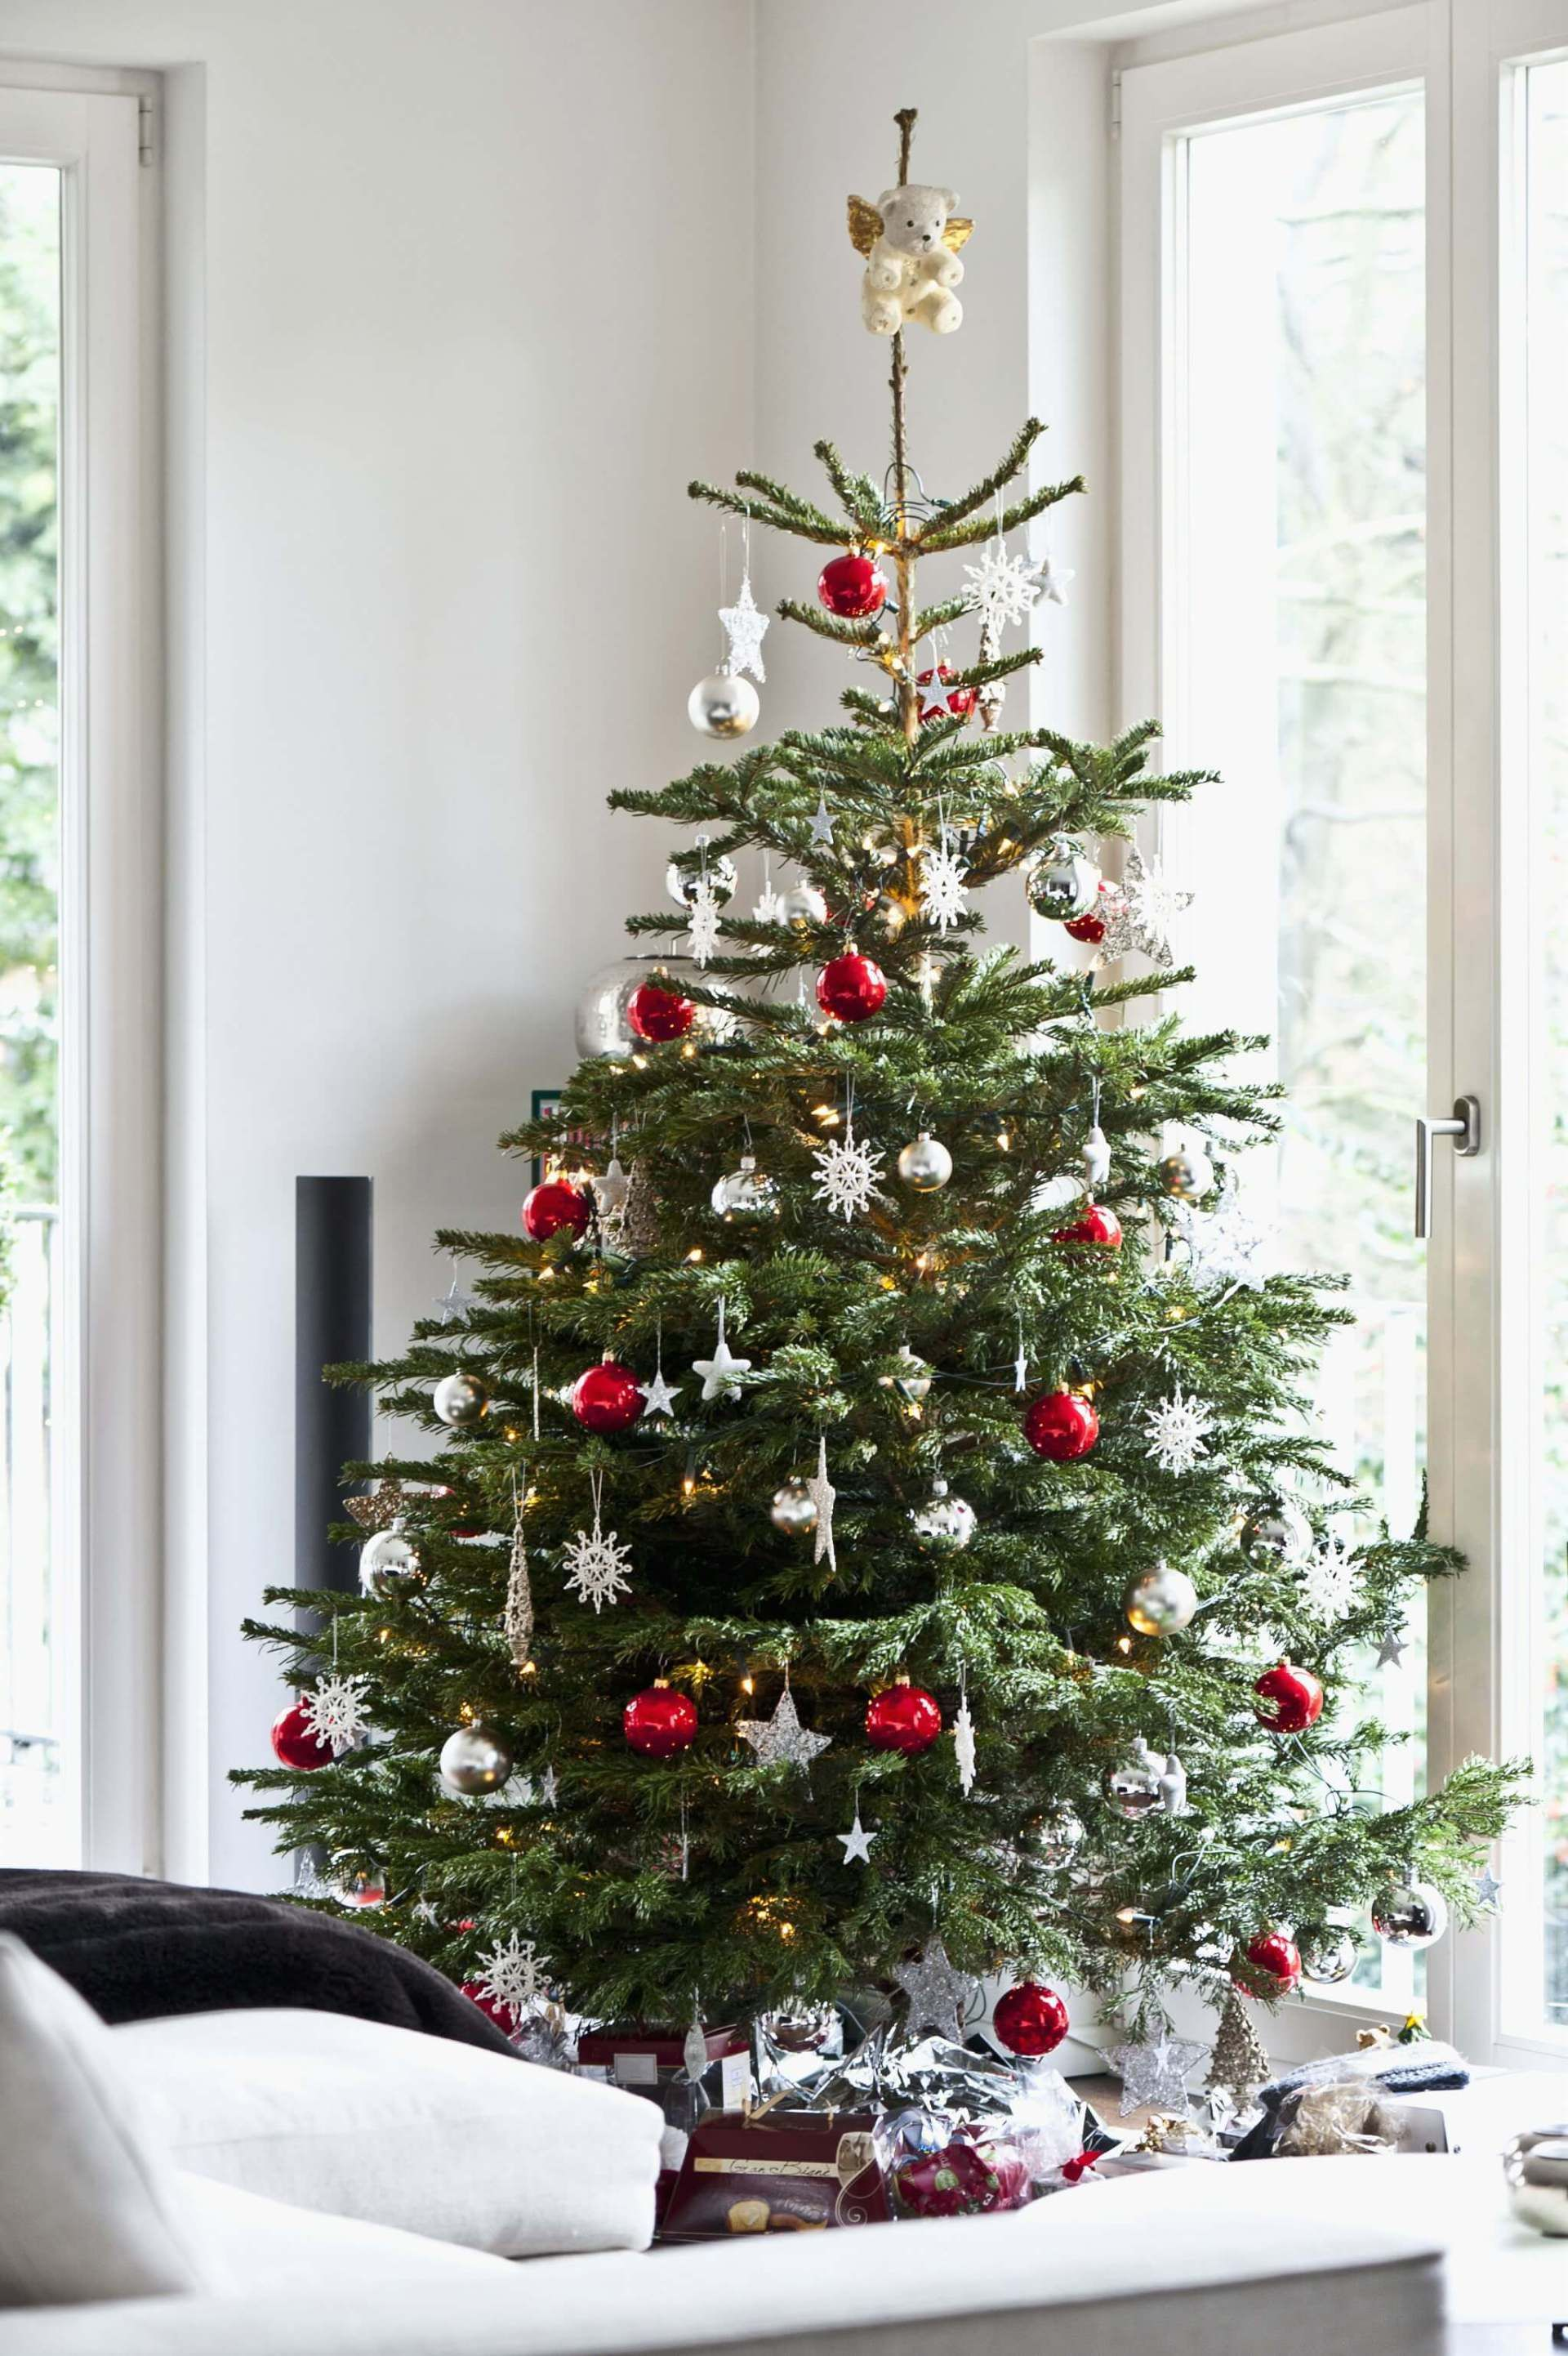 25 Inexpensive Christmas Tree Decorating Ideas Farmfoodfamily Scandinavian Christmas Trees Cheap Christmas Trees Minimalist Christmas Tree